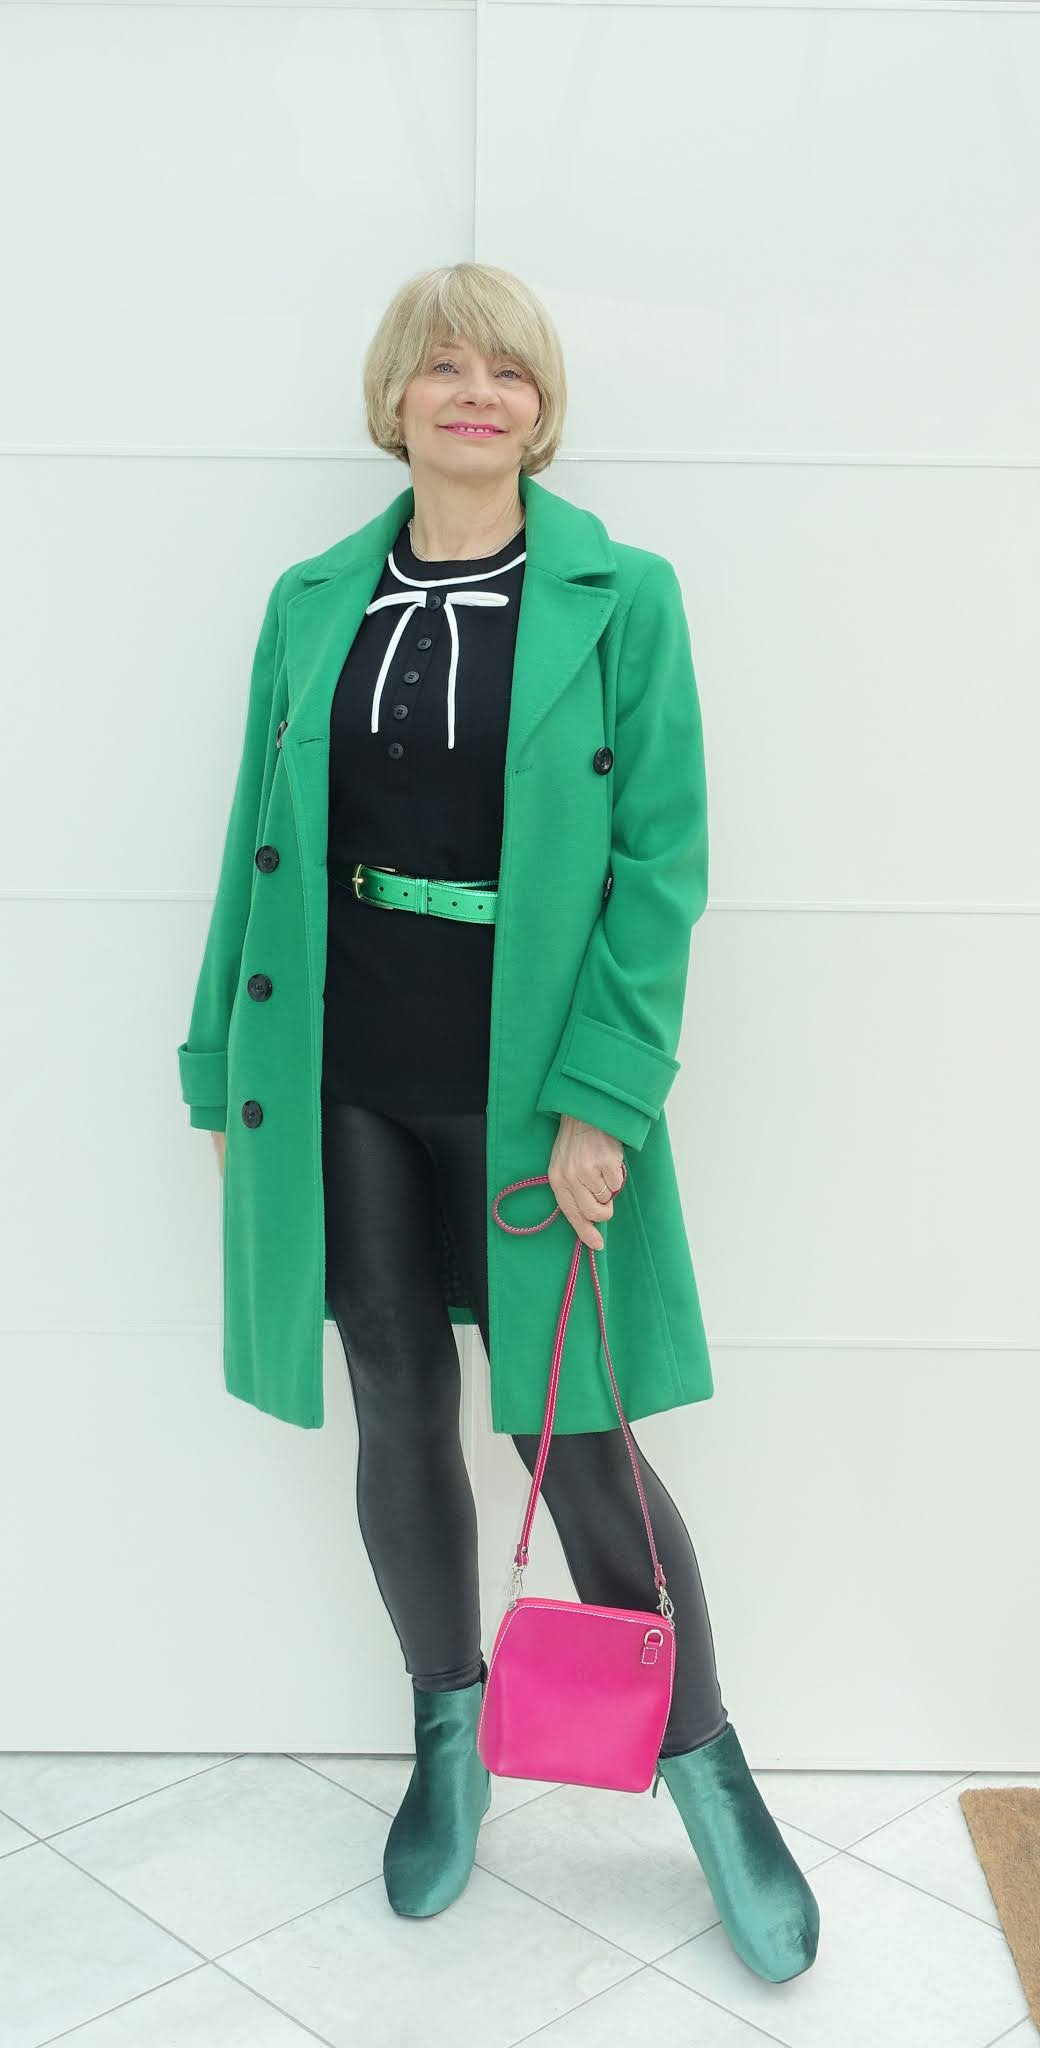 Faced with the challenge Faux Leather, Is This Mutton's Gail Hanlon remembered she has a pair of Spanx faux leather leggings. These she styled with a green coat, boots and belt, and black Peter Pan collar top with pink bag